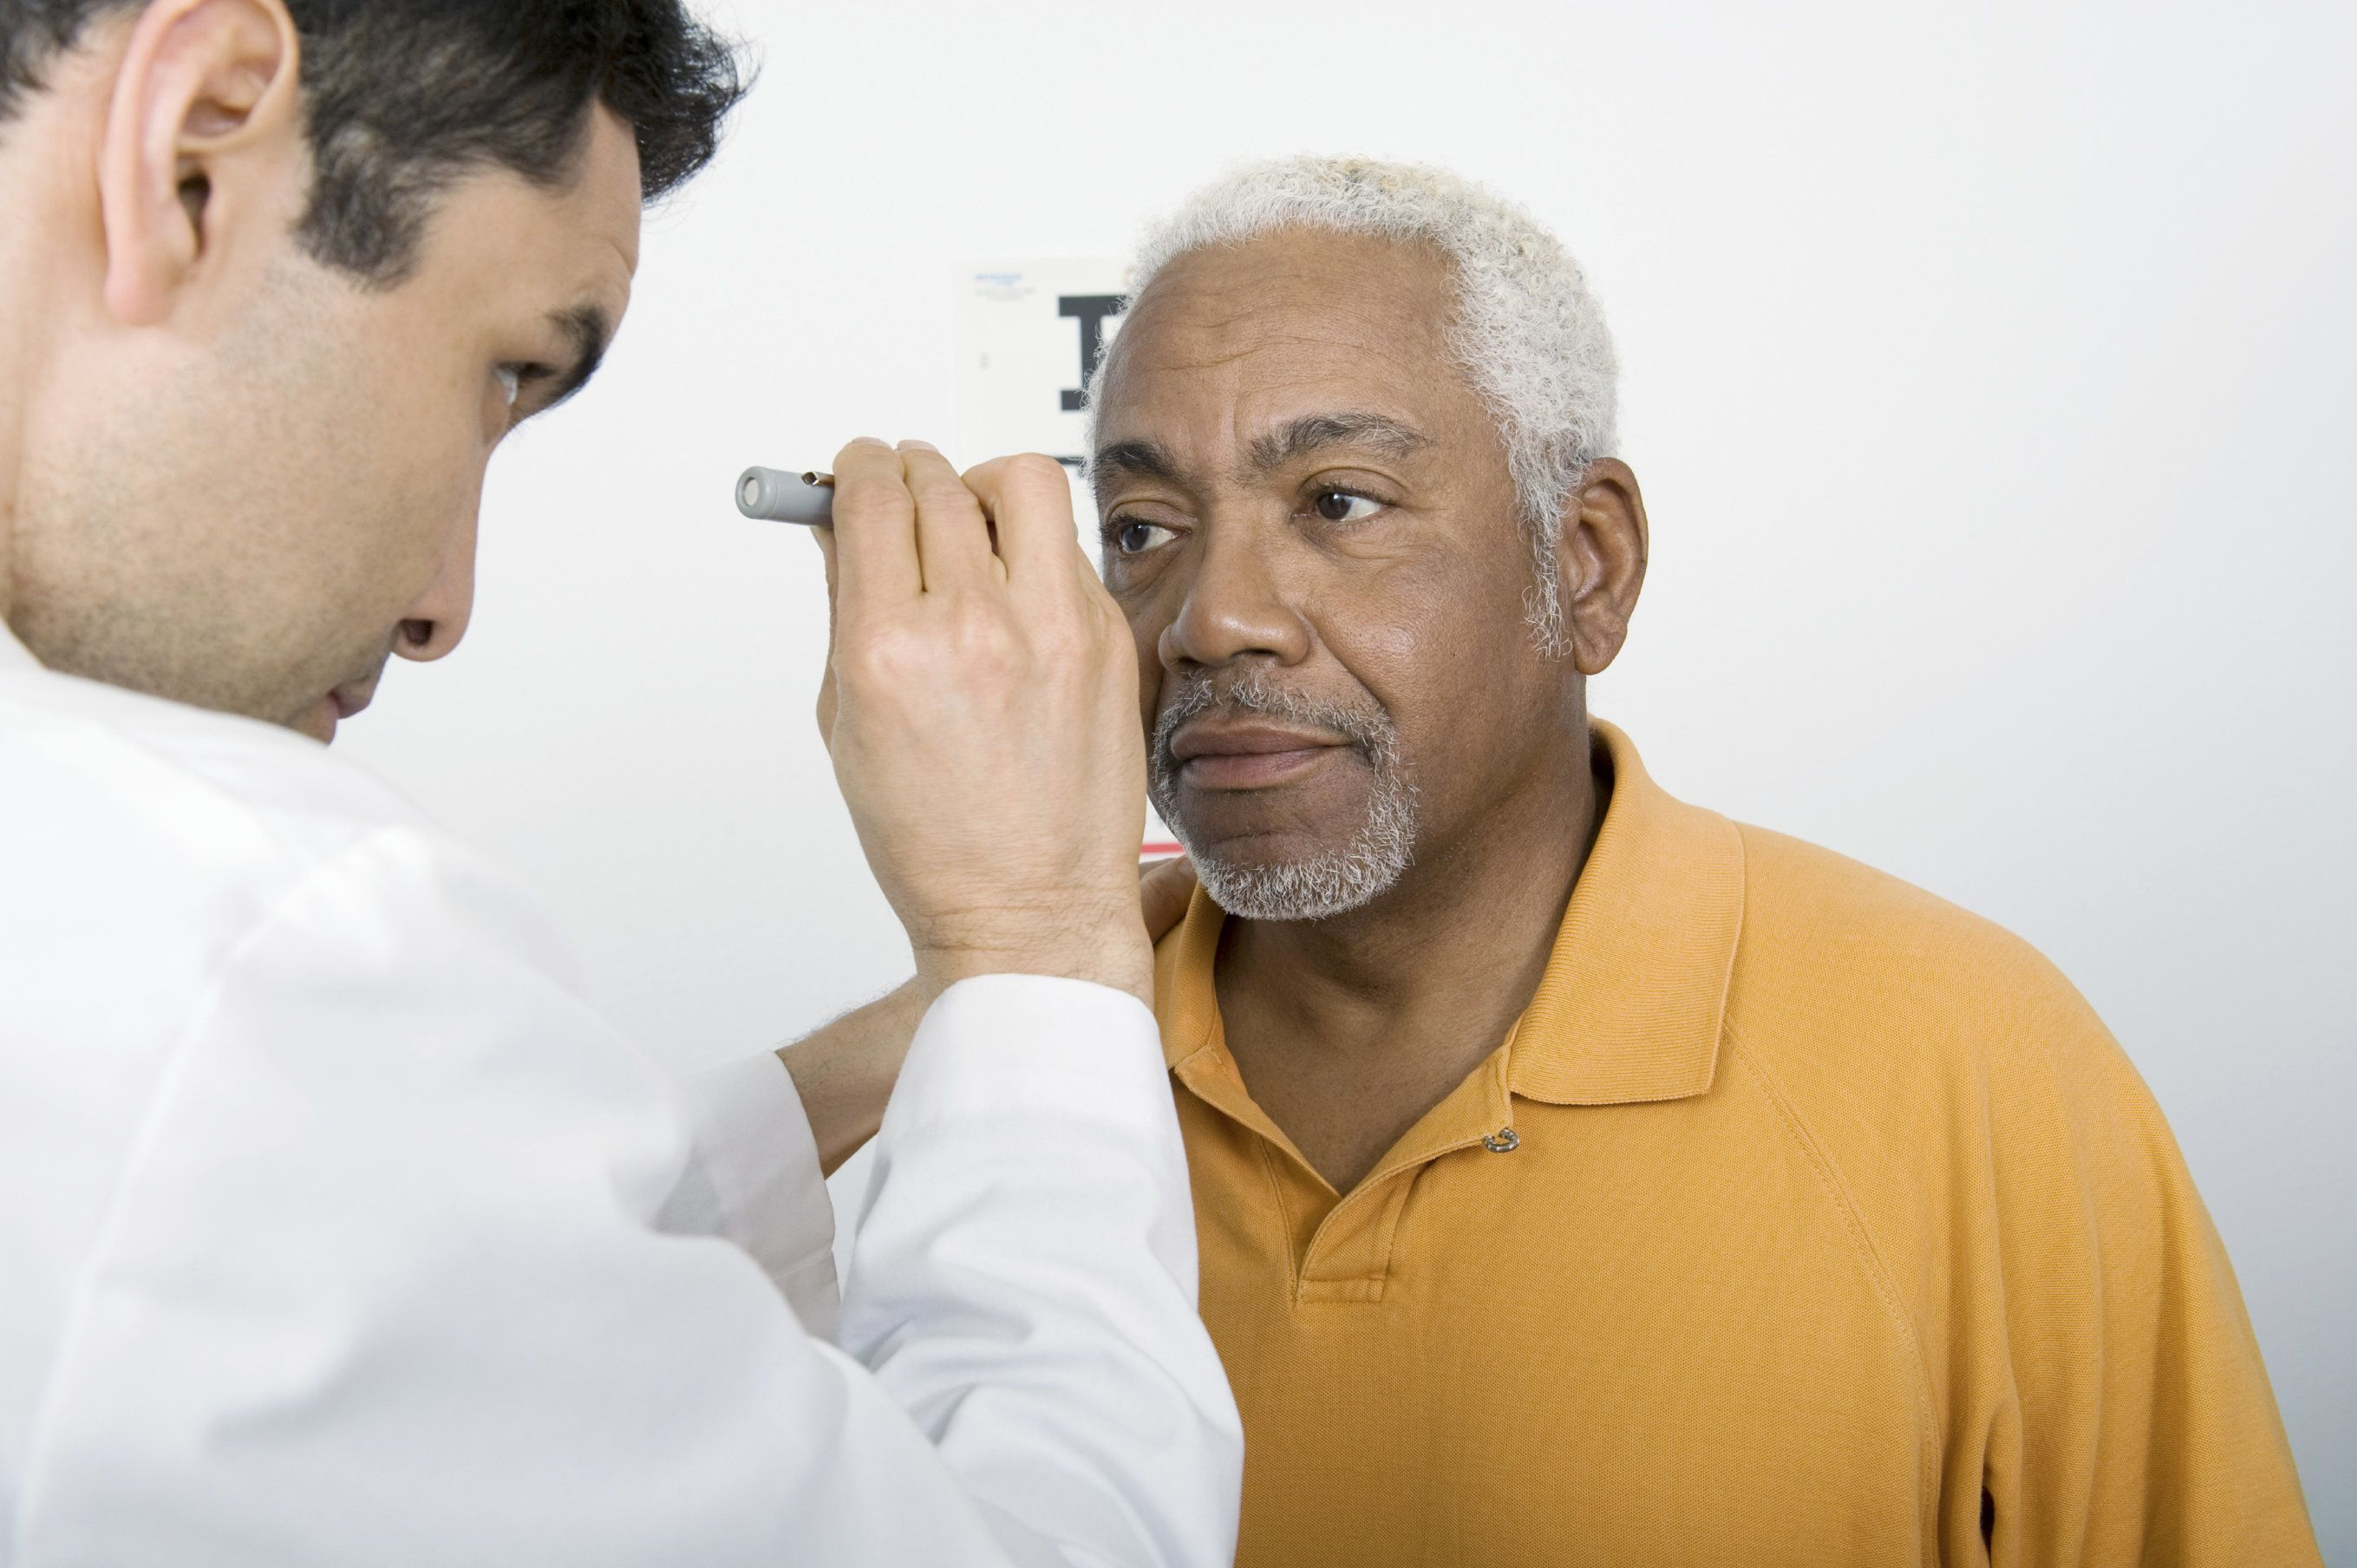 Senior male at an eye exam